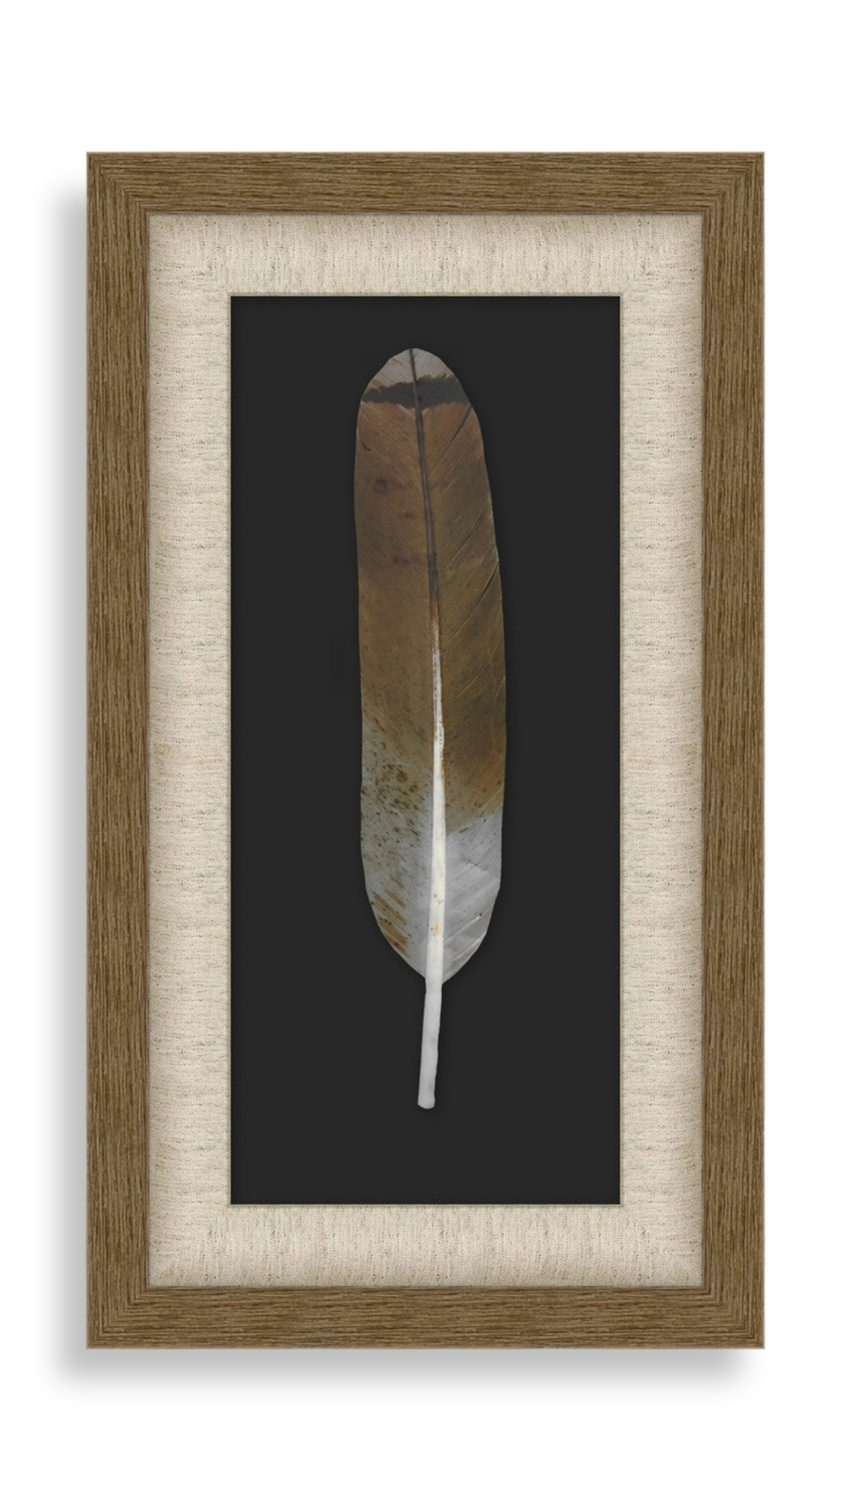 Harris Feather Wall Art | Gabberts In Latest Feather Wall Art (Gallery 19 of 20)